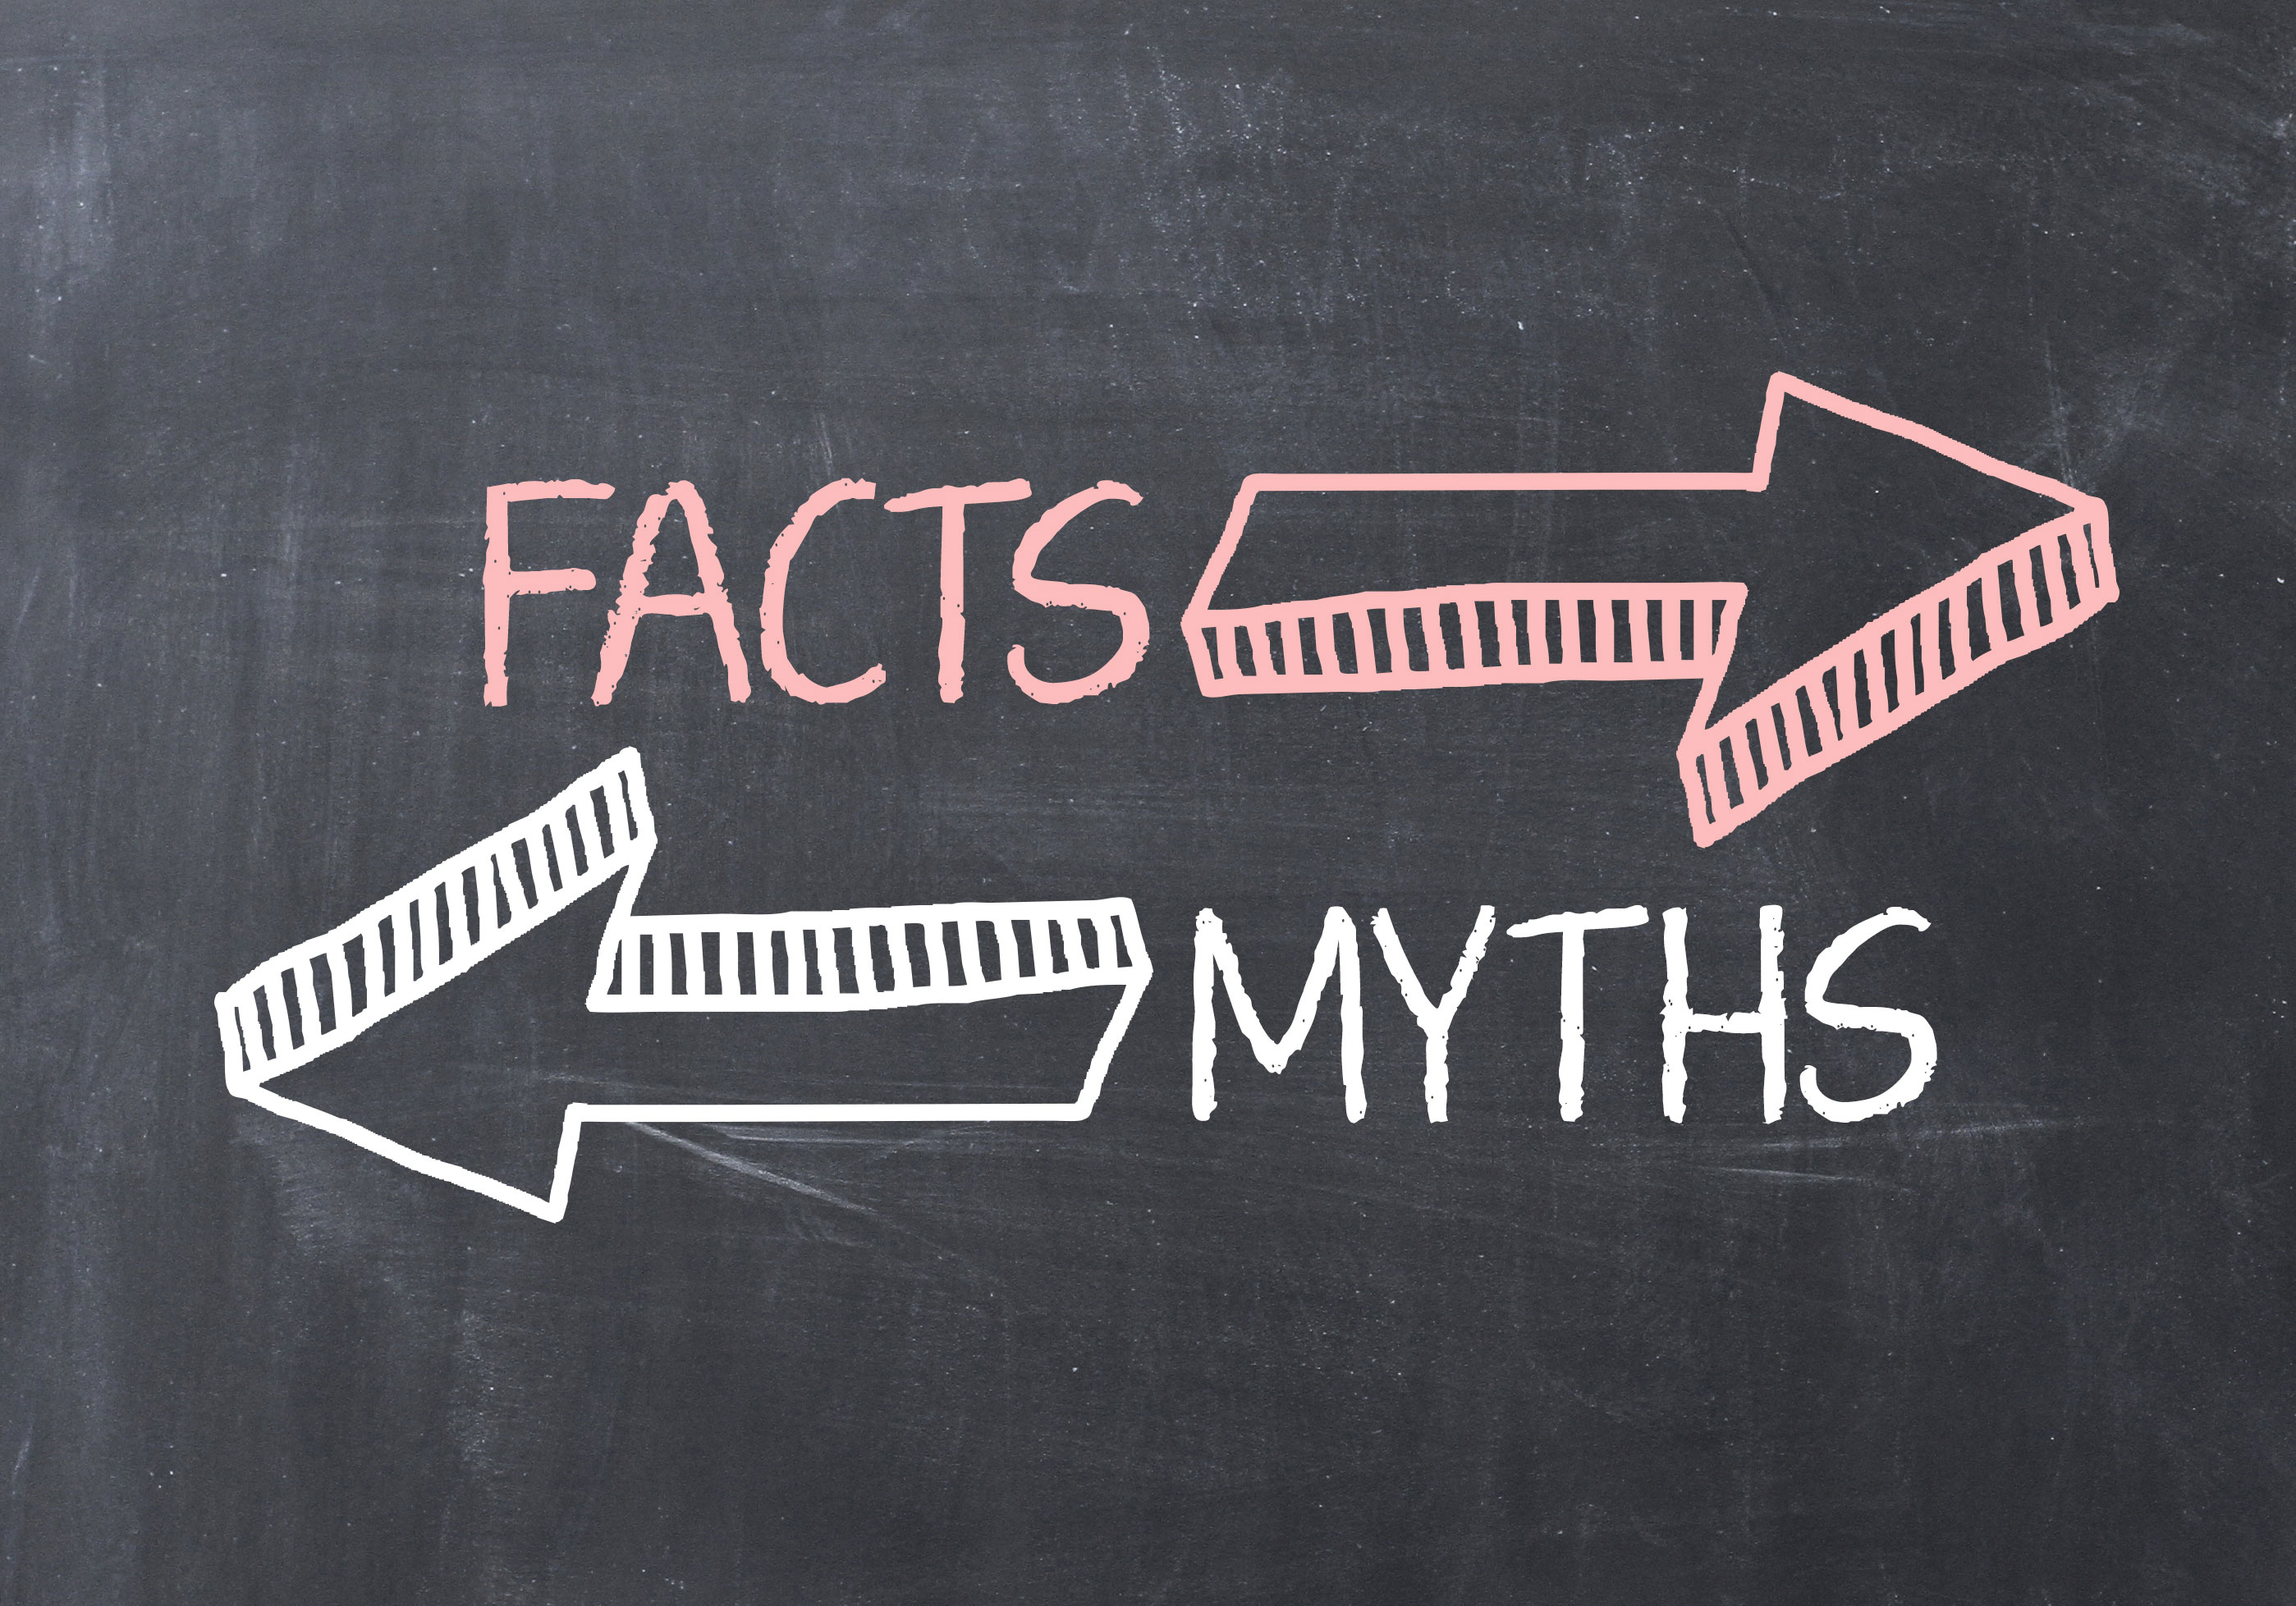 c s i myth vs reality Assisted outpatient treatment: myth vs reality summary: assisted outpatient treatment (aot) programs allow judges to order certain mentally ill individuals to stay in treatment as a condition of living in the community.